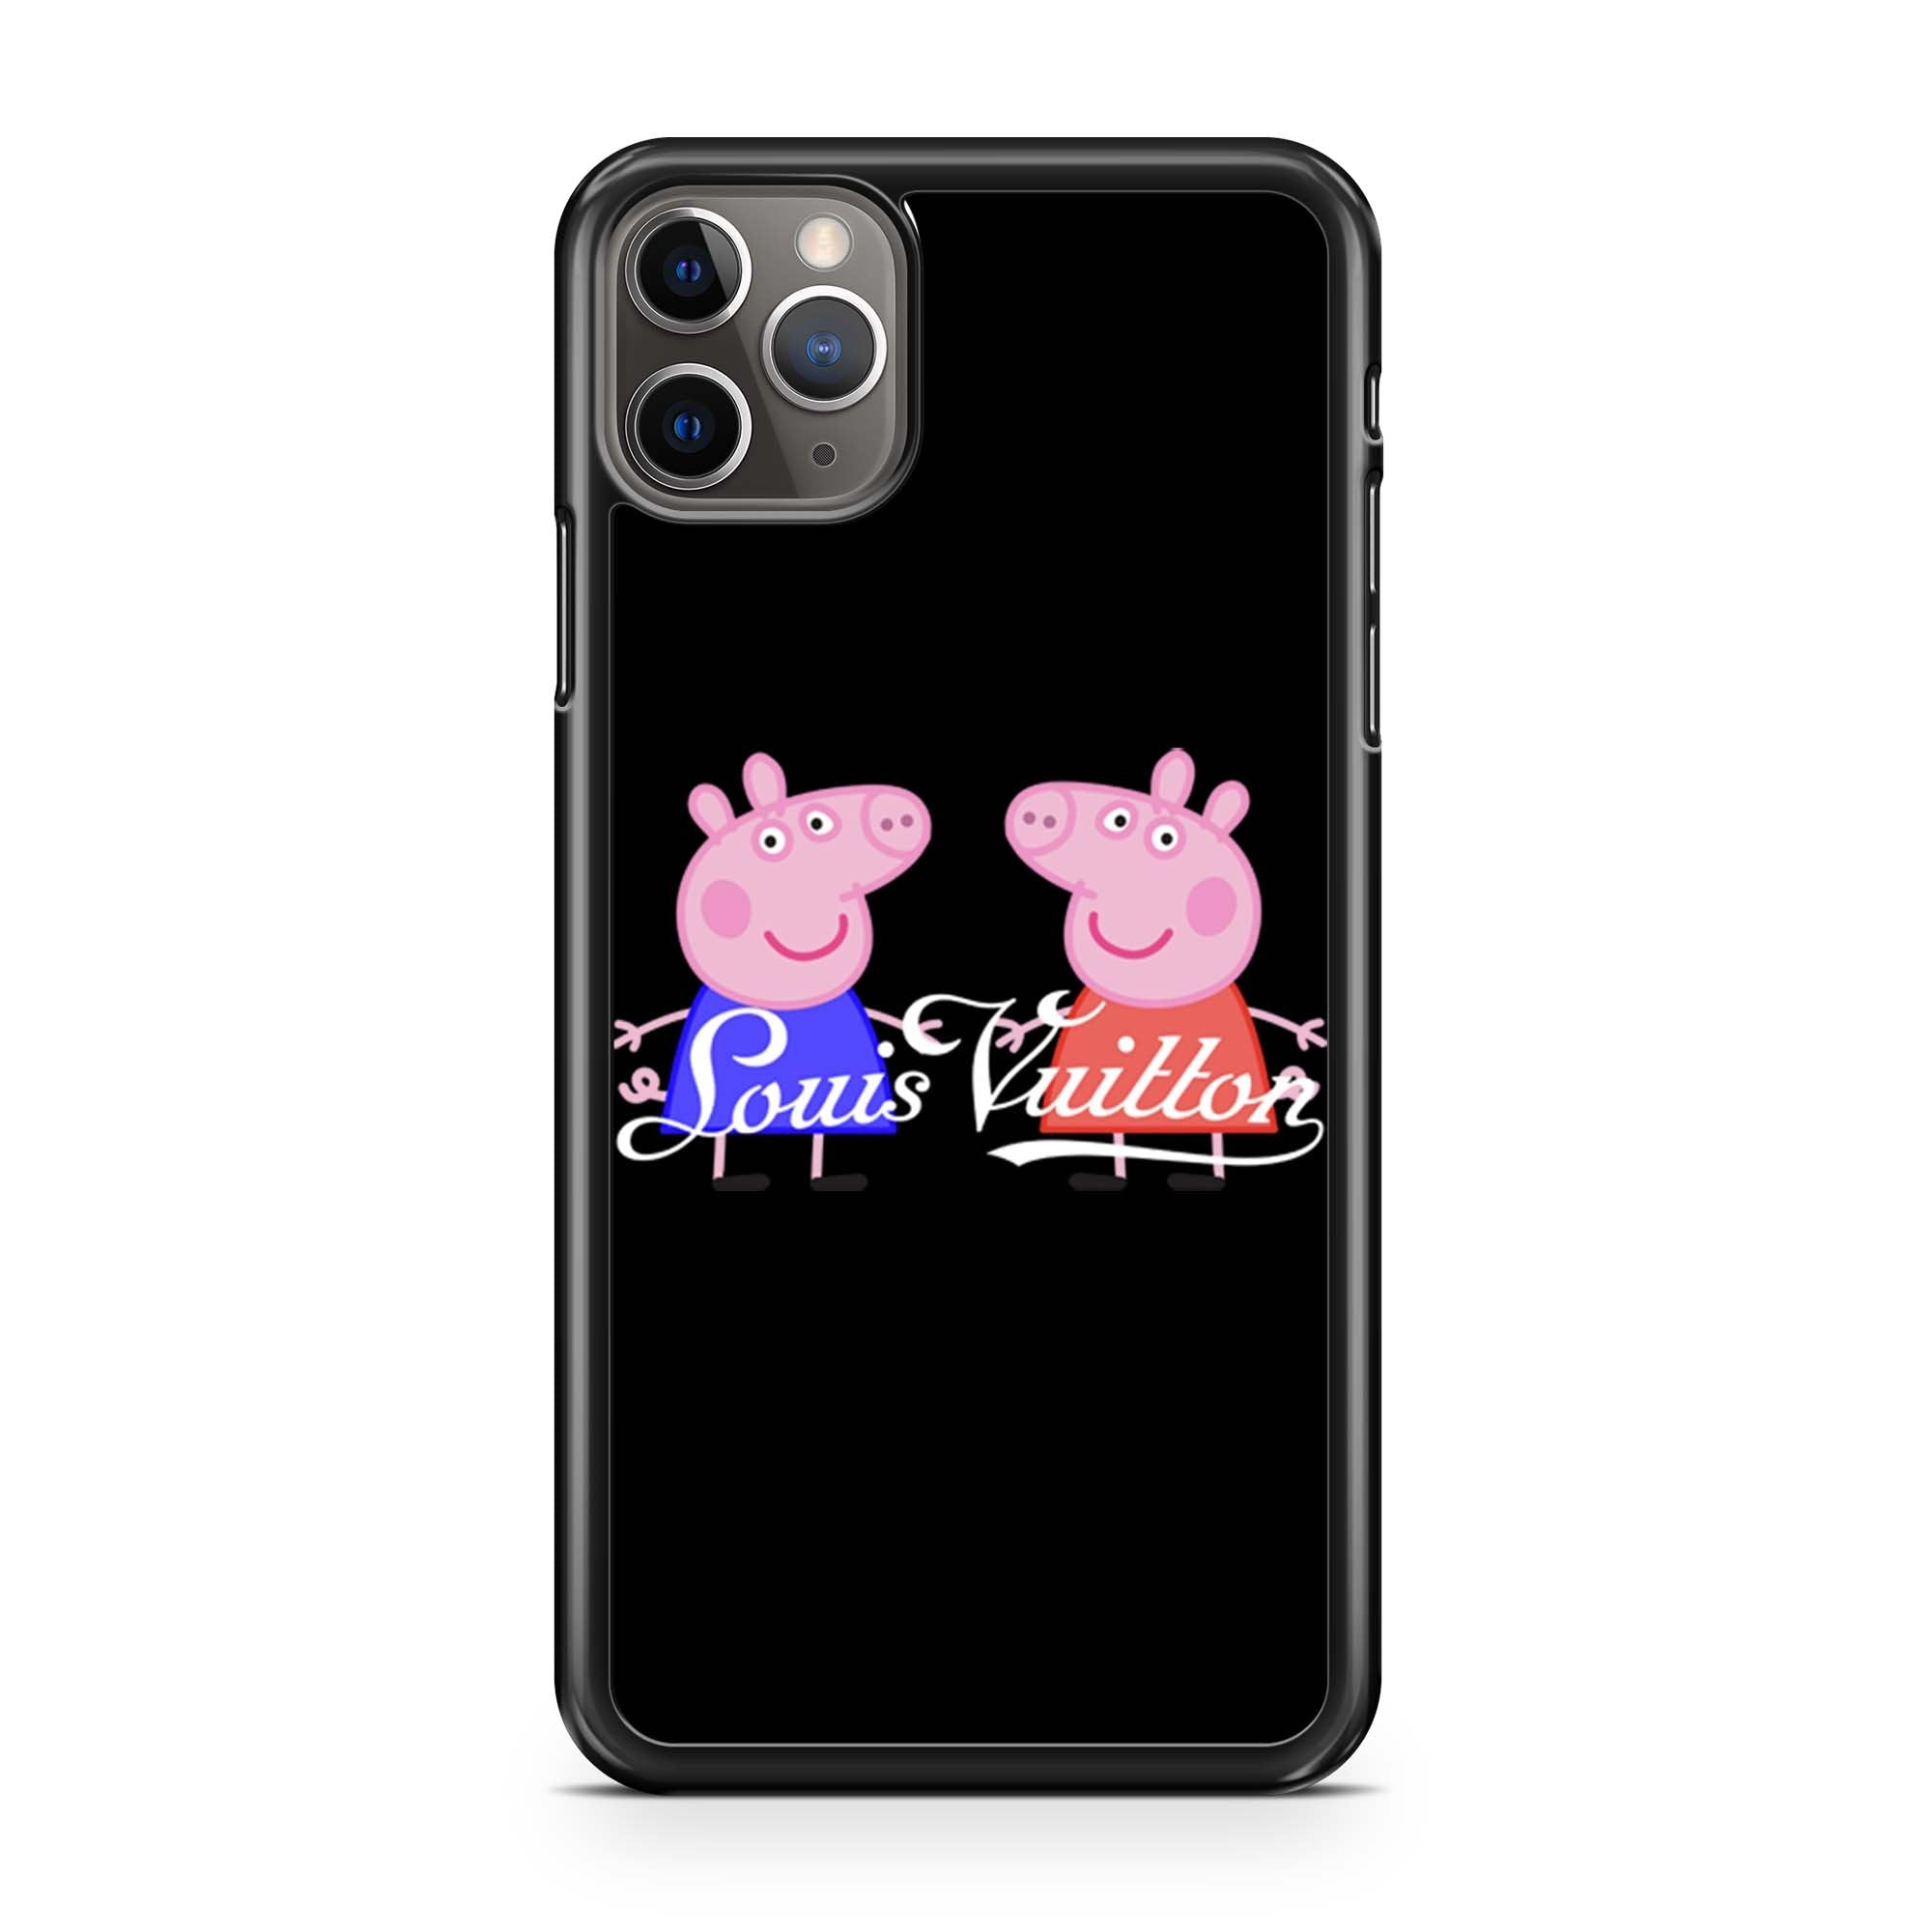 Pig Luis Vition iPhone 11 Pro Max Case